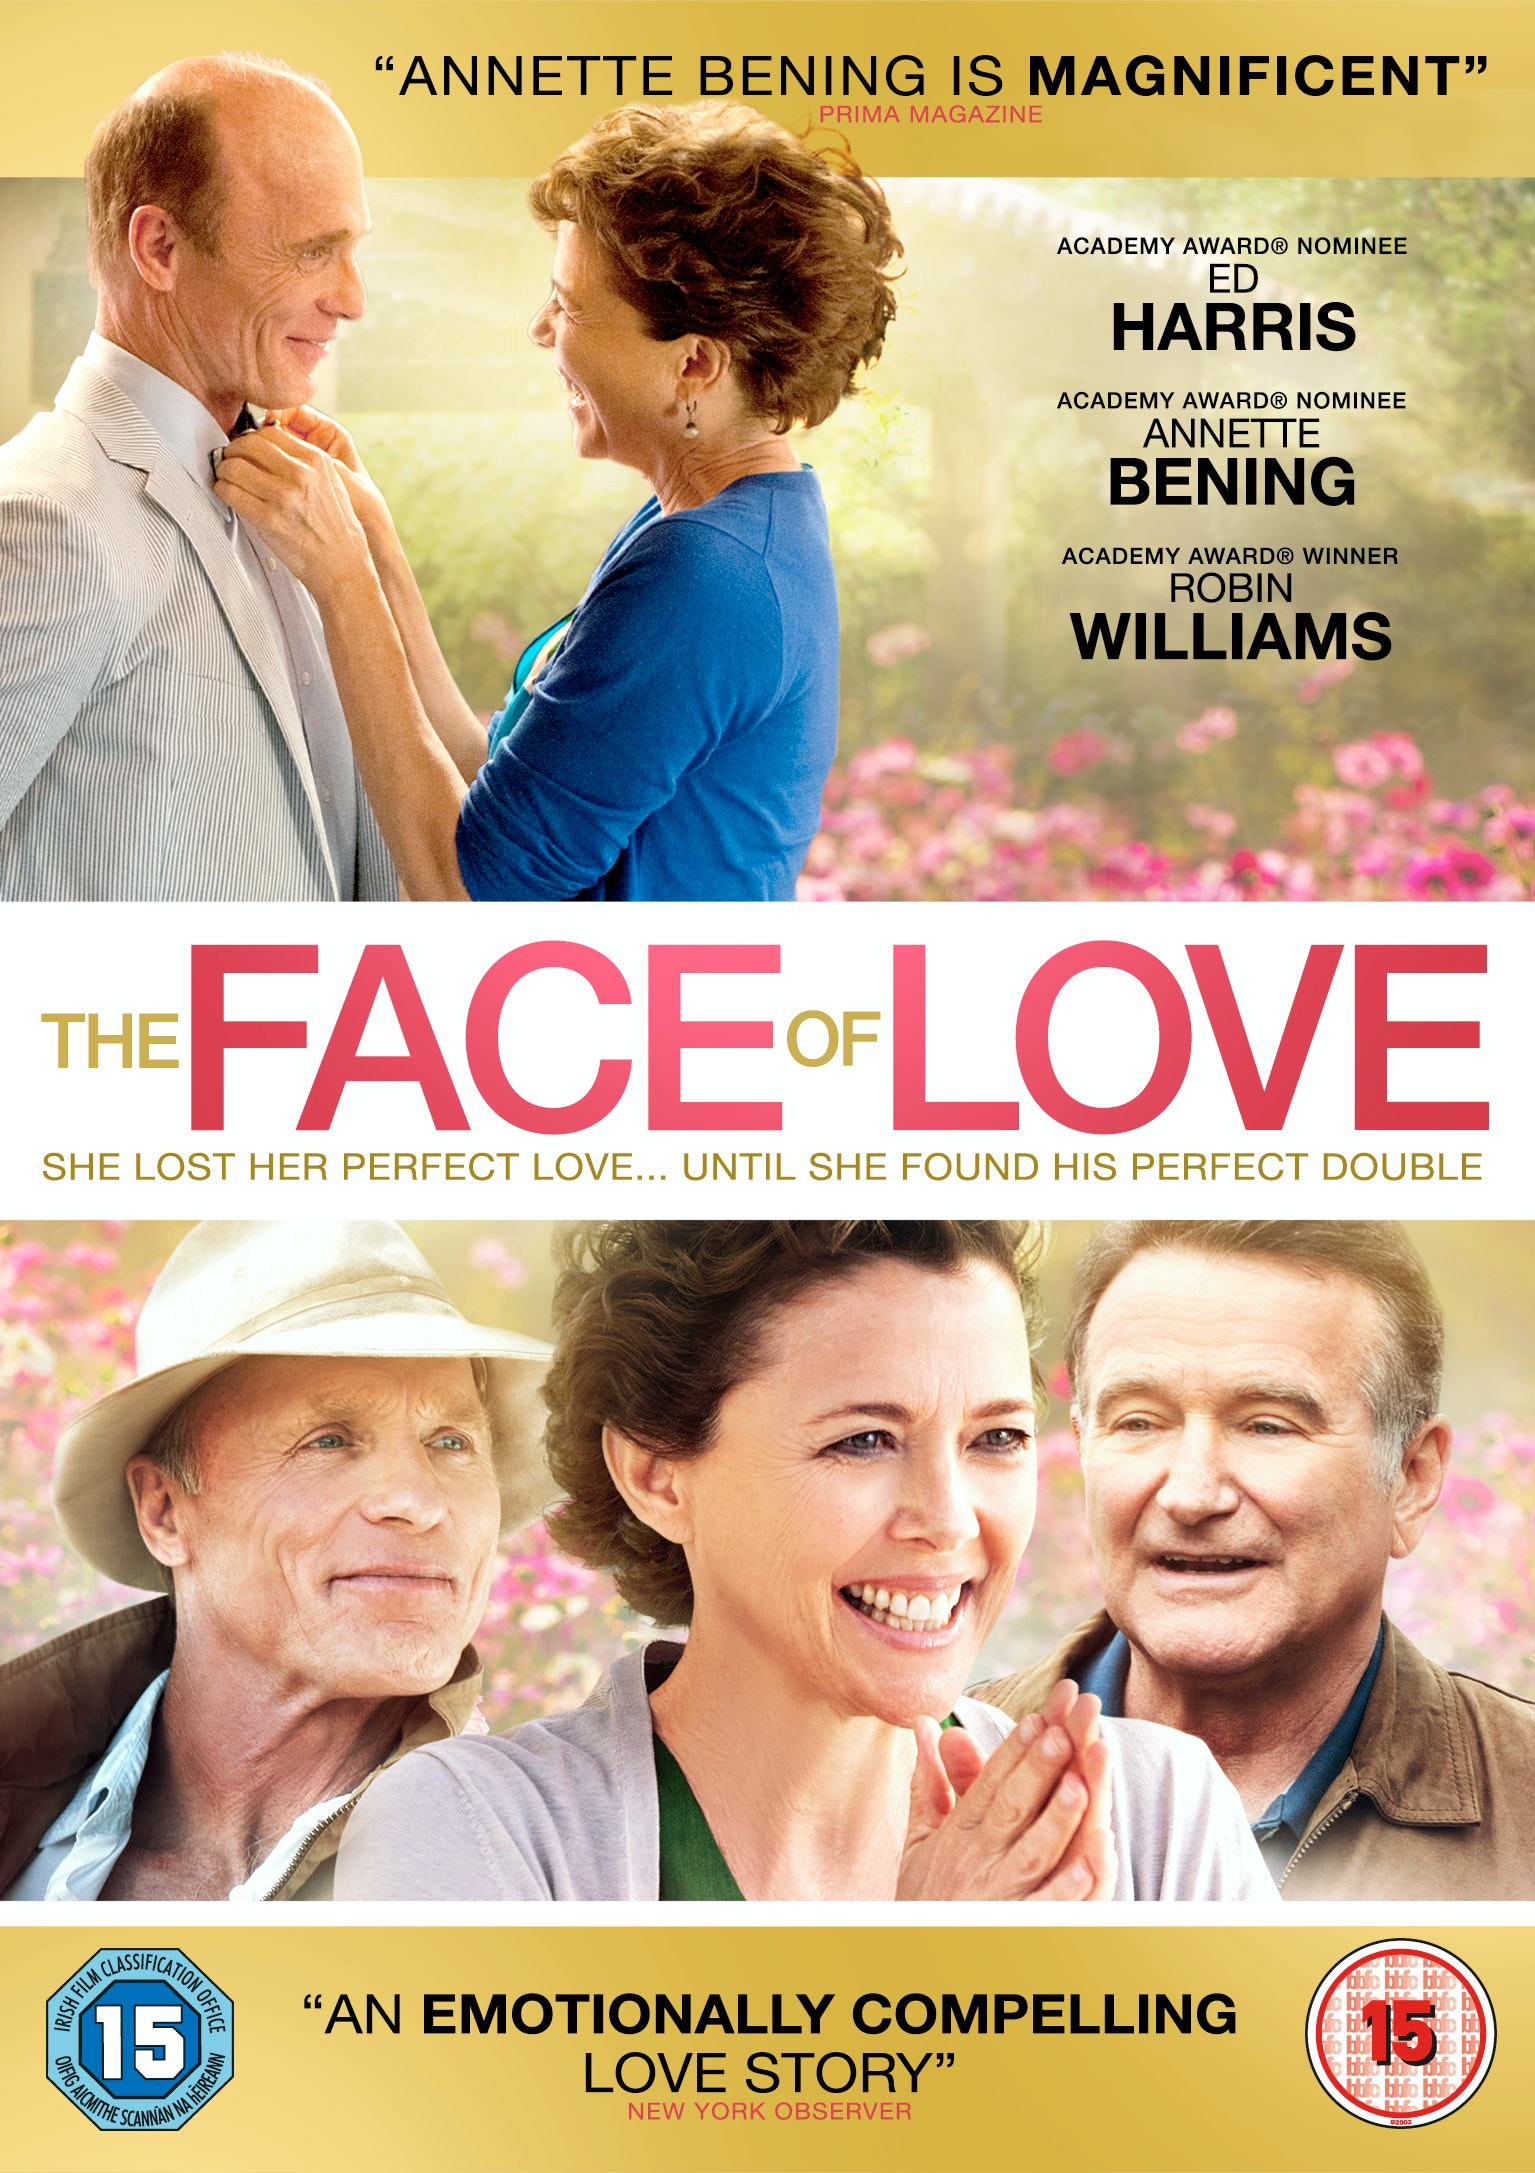 win your own copy of The Face of Love on DVD sweepstakes